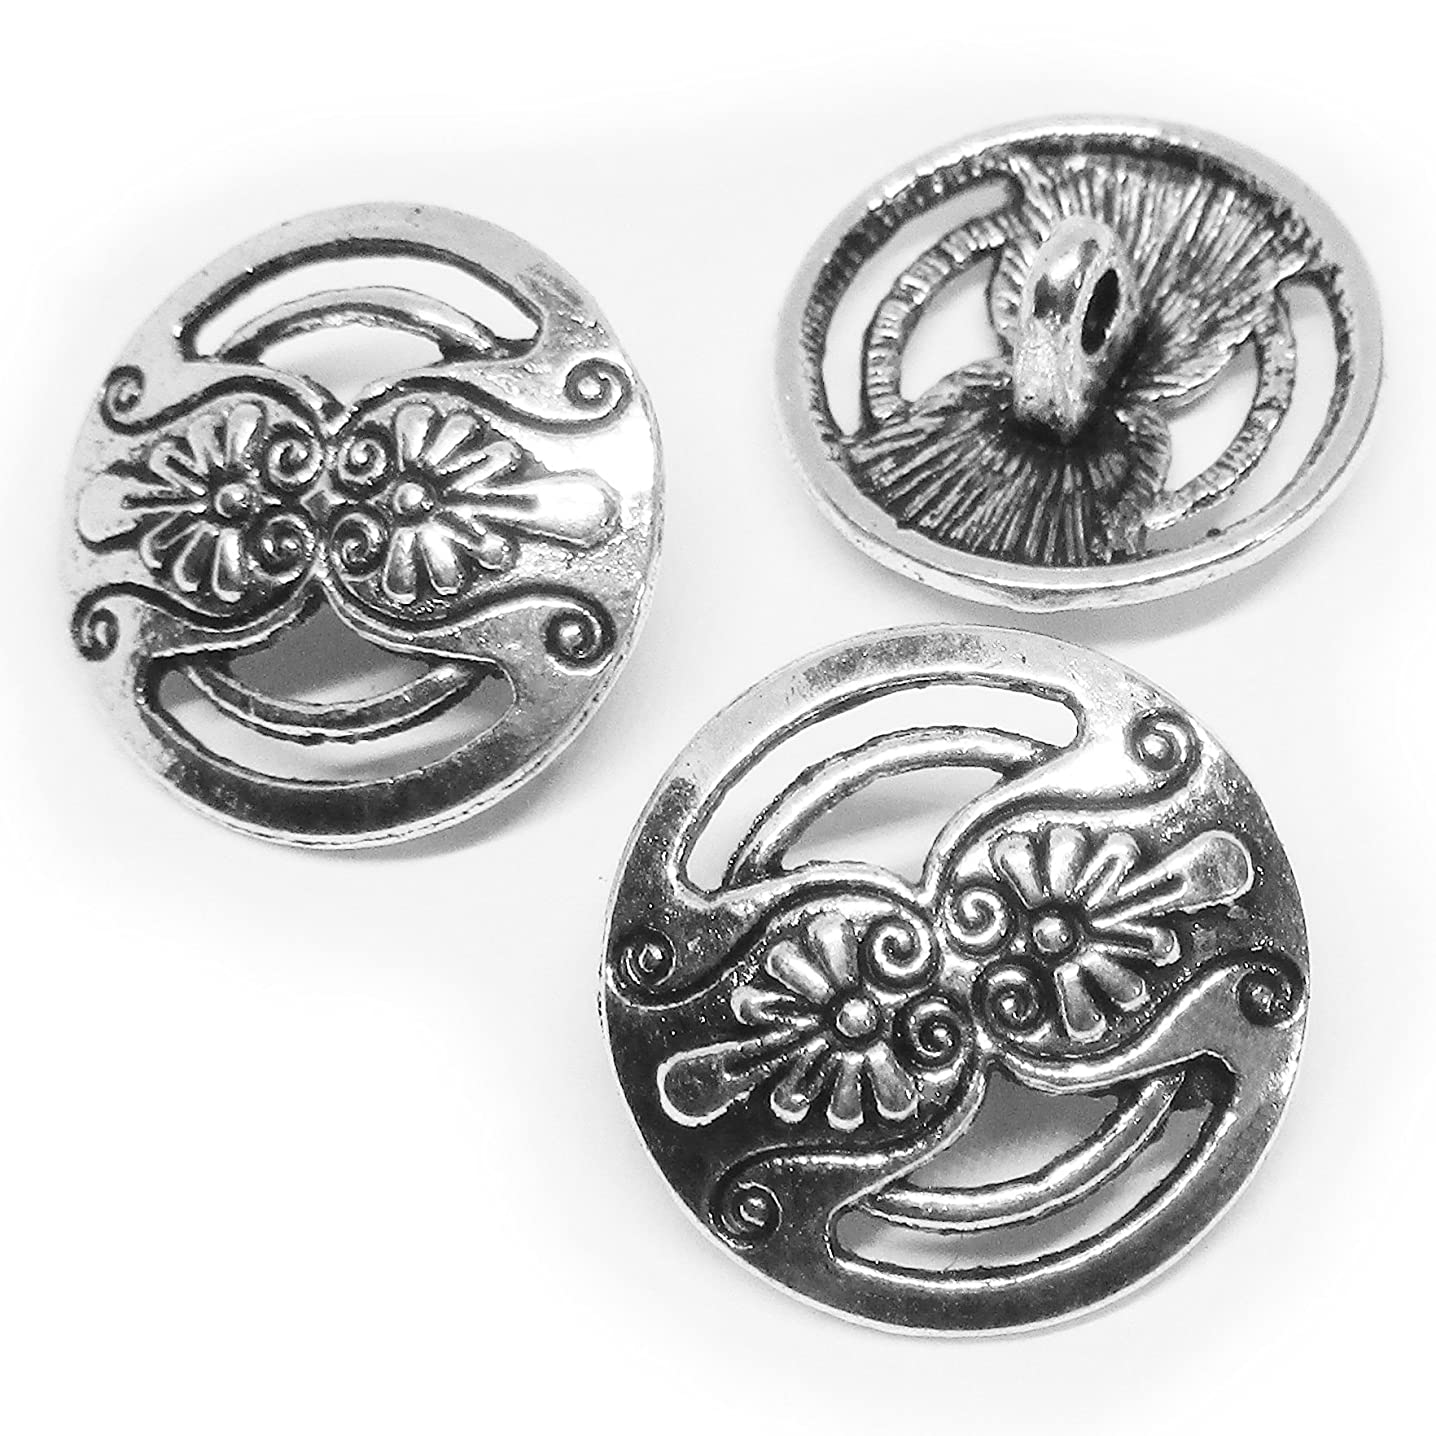 Heather's cf 50 Pieces Silver Tone Hollow Carved Buttons Beads DIY Charms Pendants 17mm